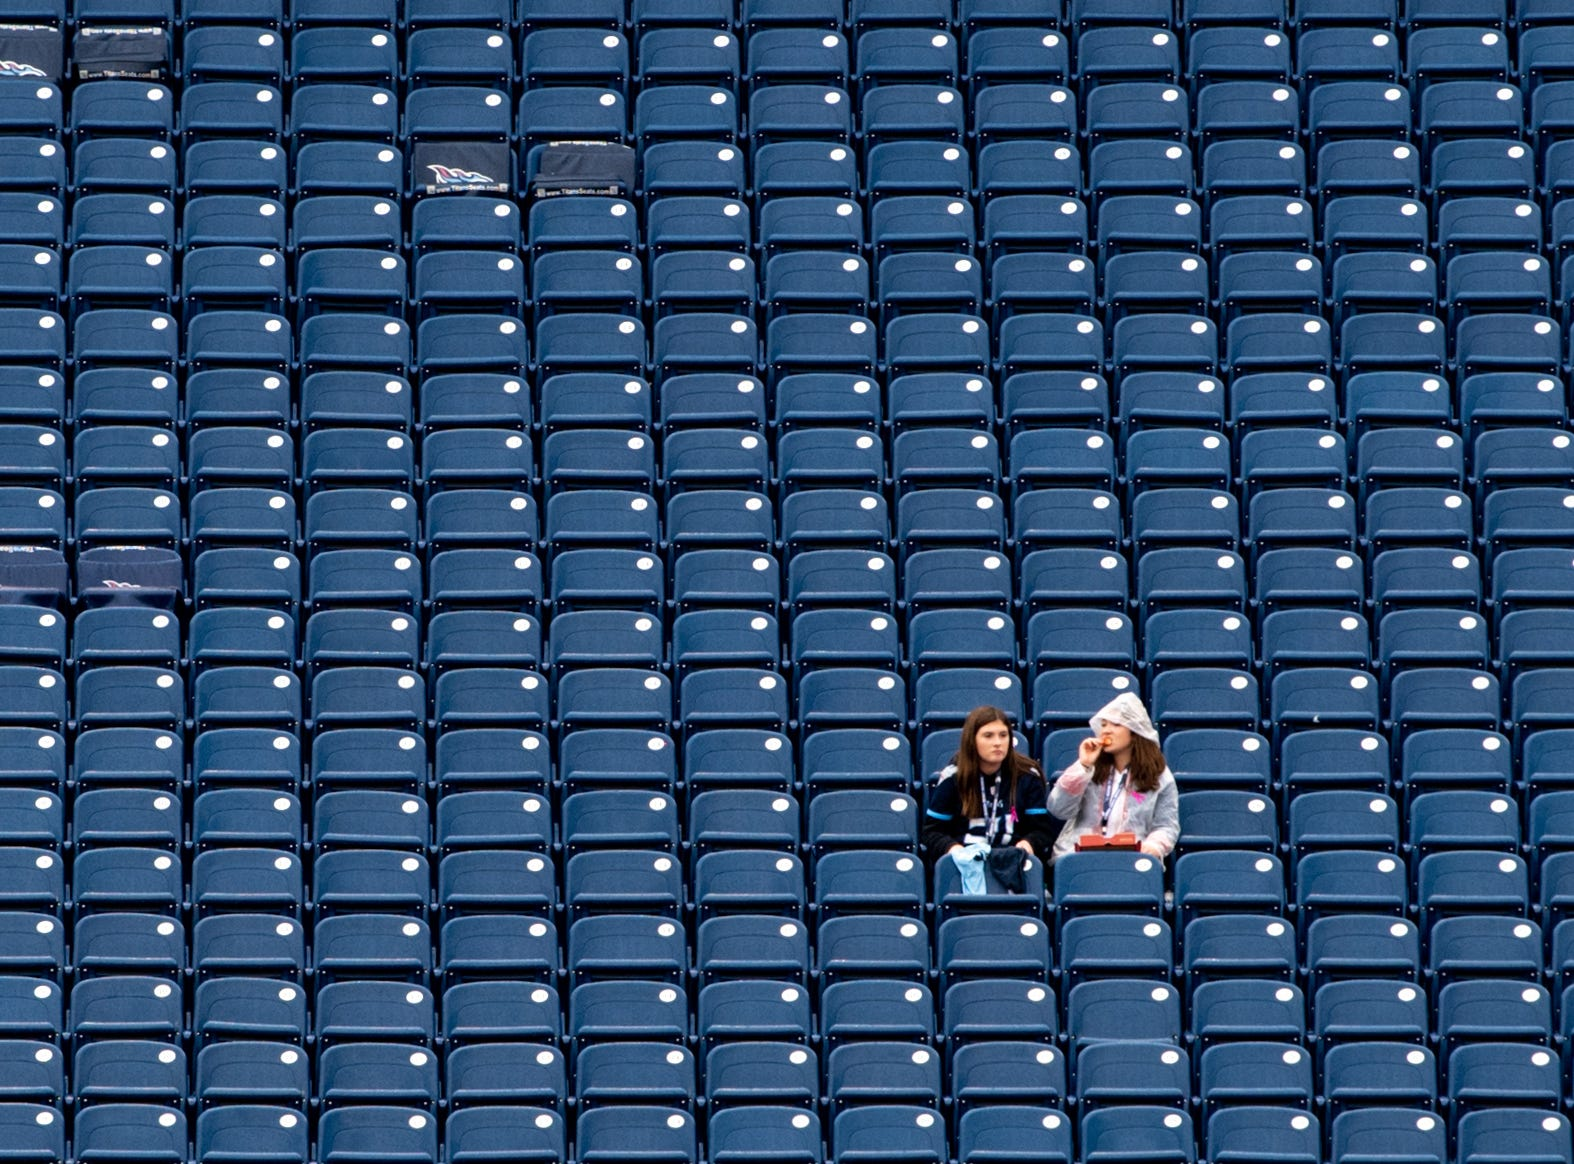 Fans watch warm-ups before the game between the Tennessee Titans and the Baltimore Ravens at Nissan Stadium in Nashville, Tenn., Sunday, Oct. 14, 2018.